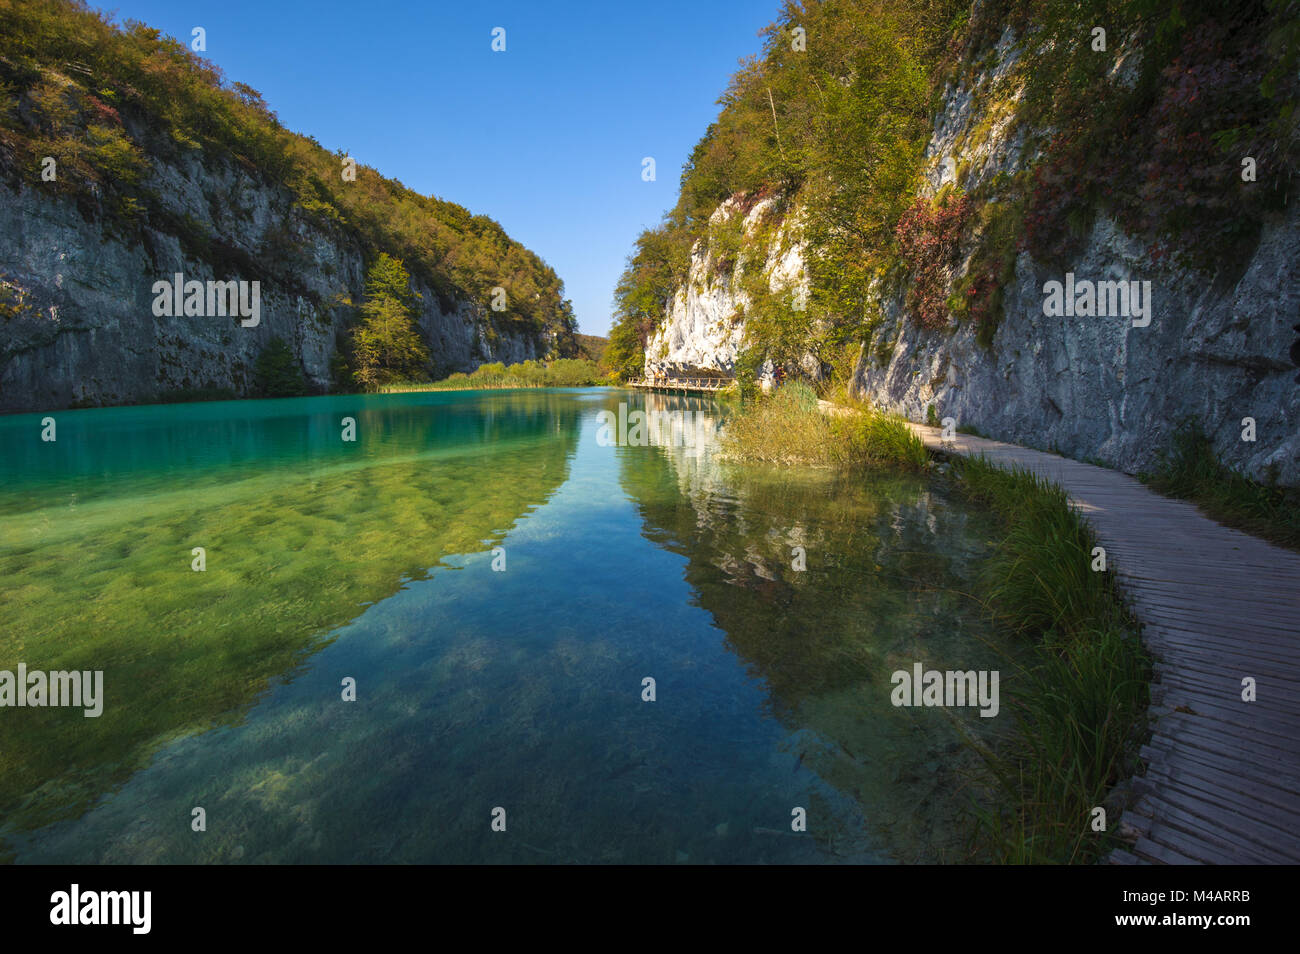 Le parc national des Lacs de Plitvice, Croatie. UNESCO World Heritage site. Photo Stock